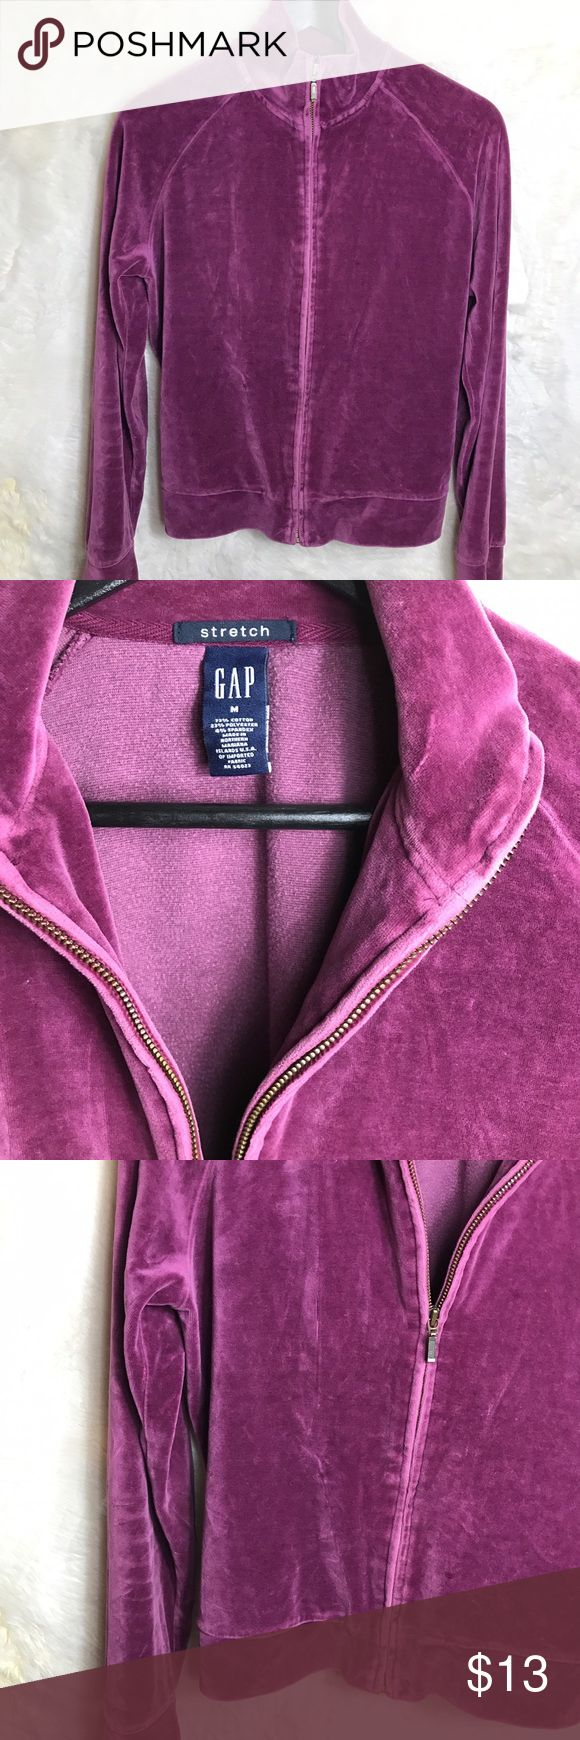 "✨GAP Velour Zip up sweater ✨ GAP Women's size M Purple Stretch Velour Track  zip up Jacket Activewear    Pre-owned No rips, tears, marks or stains Please see pictures for details  Armpit to Armpit laying flat - 20"" Length - 23.5"" GAP Sweaters"